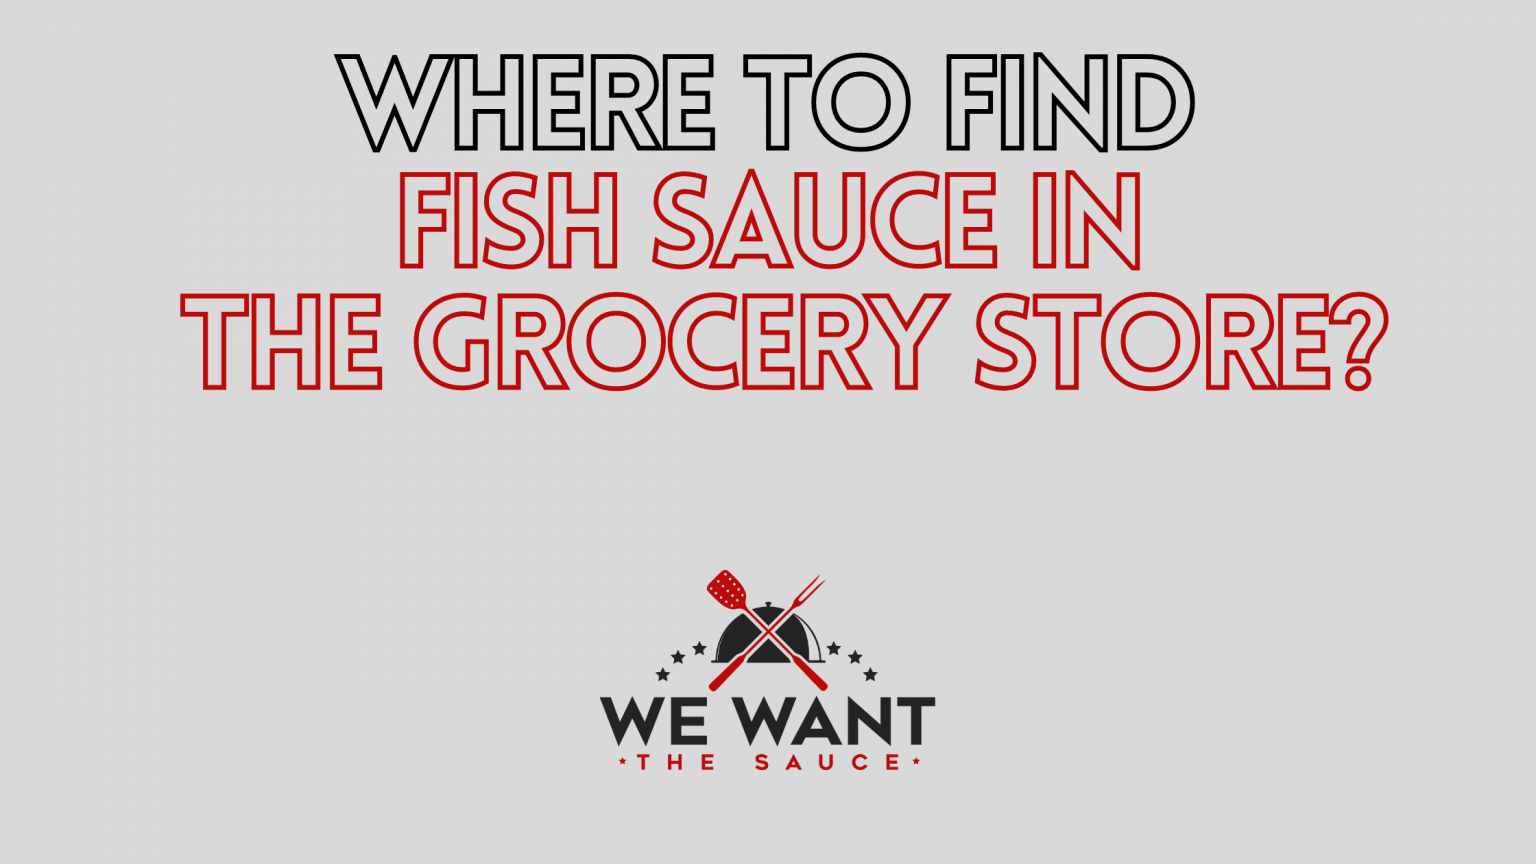 Where To Find Tartar Sauce In Grocery Store